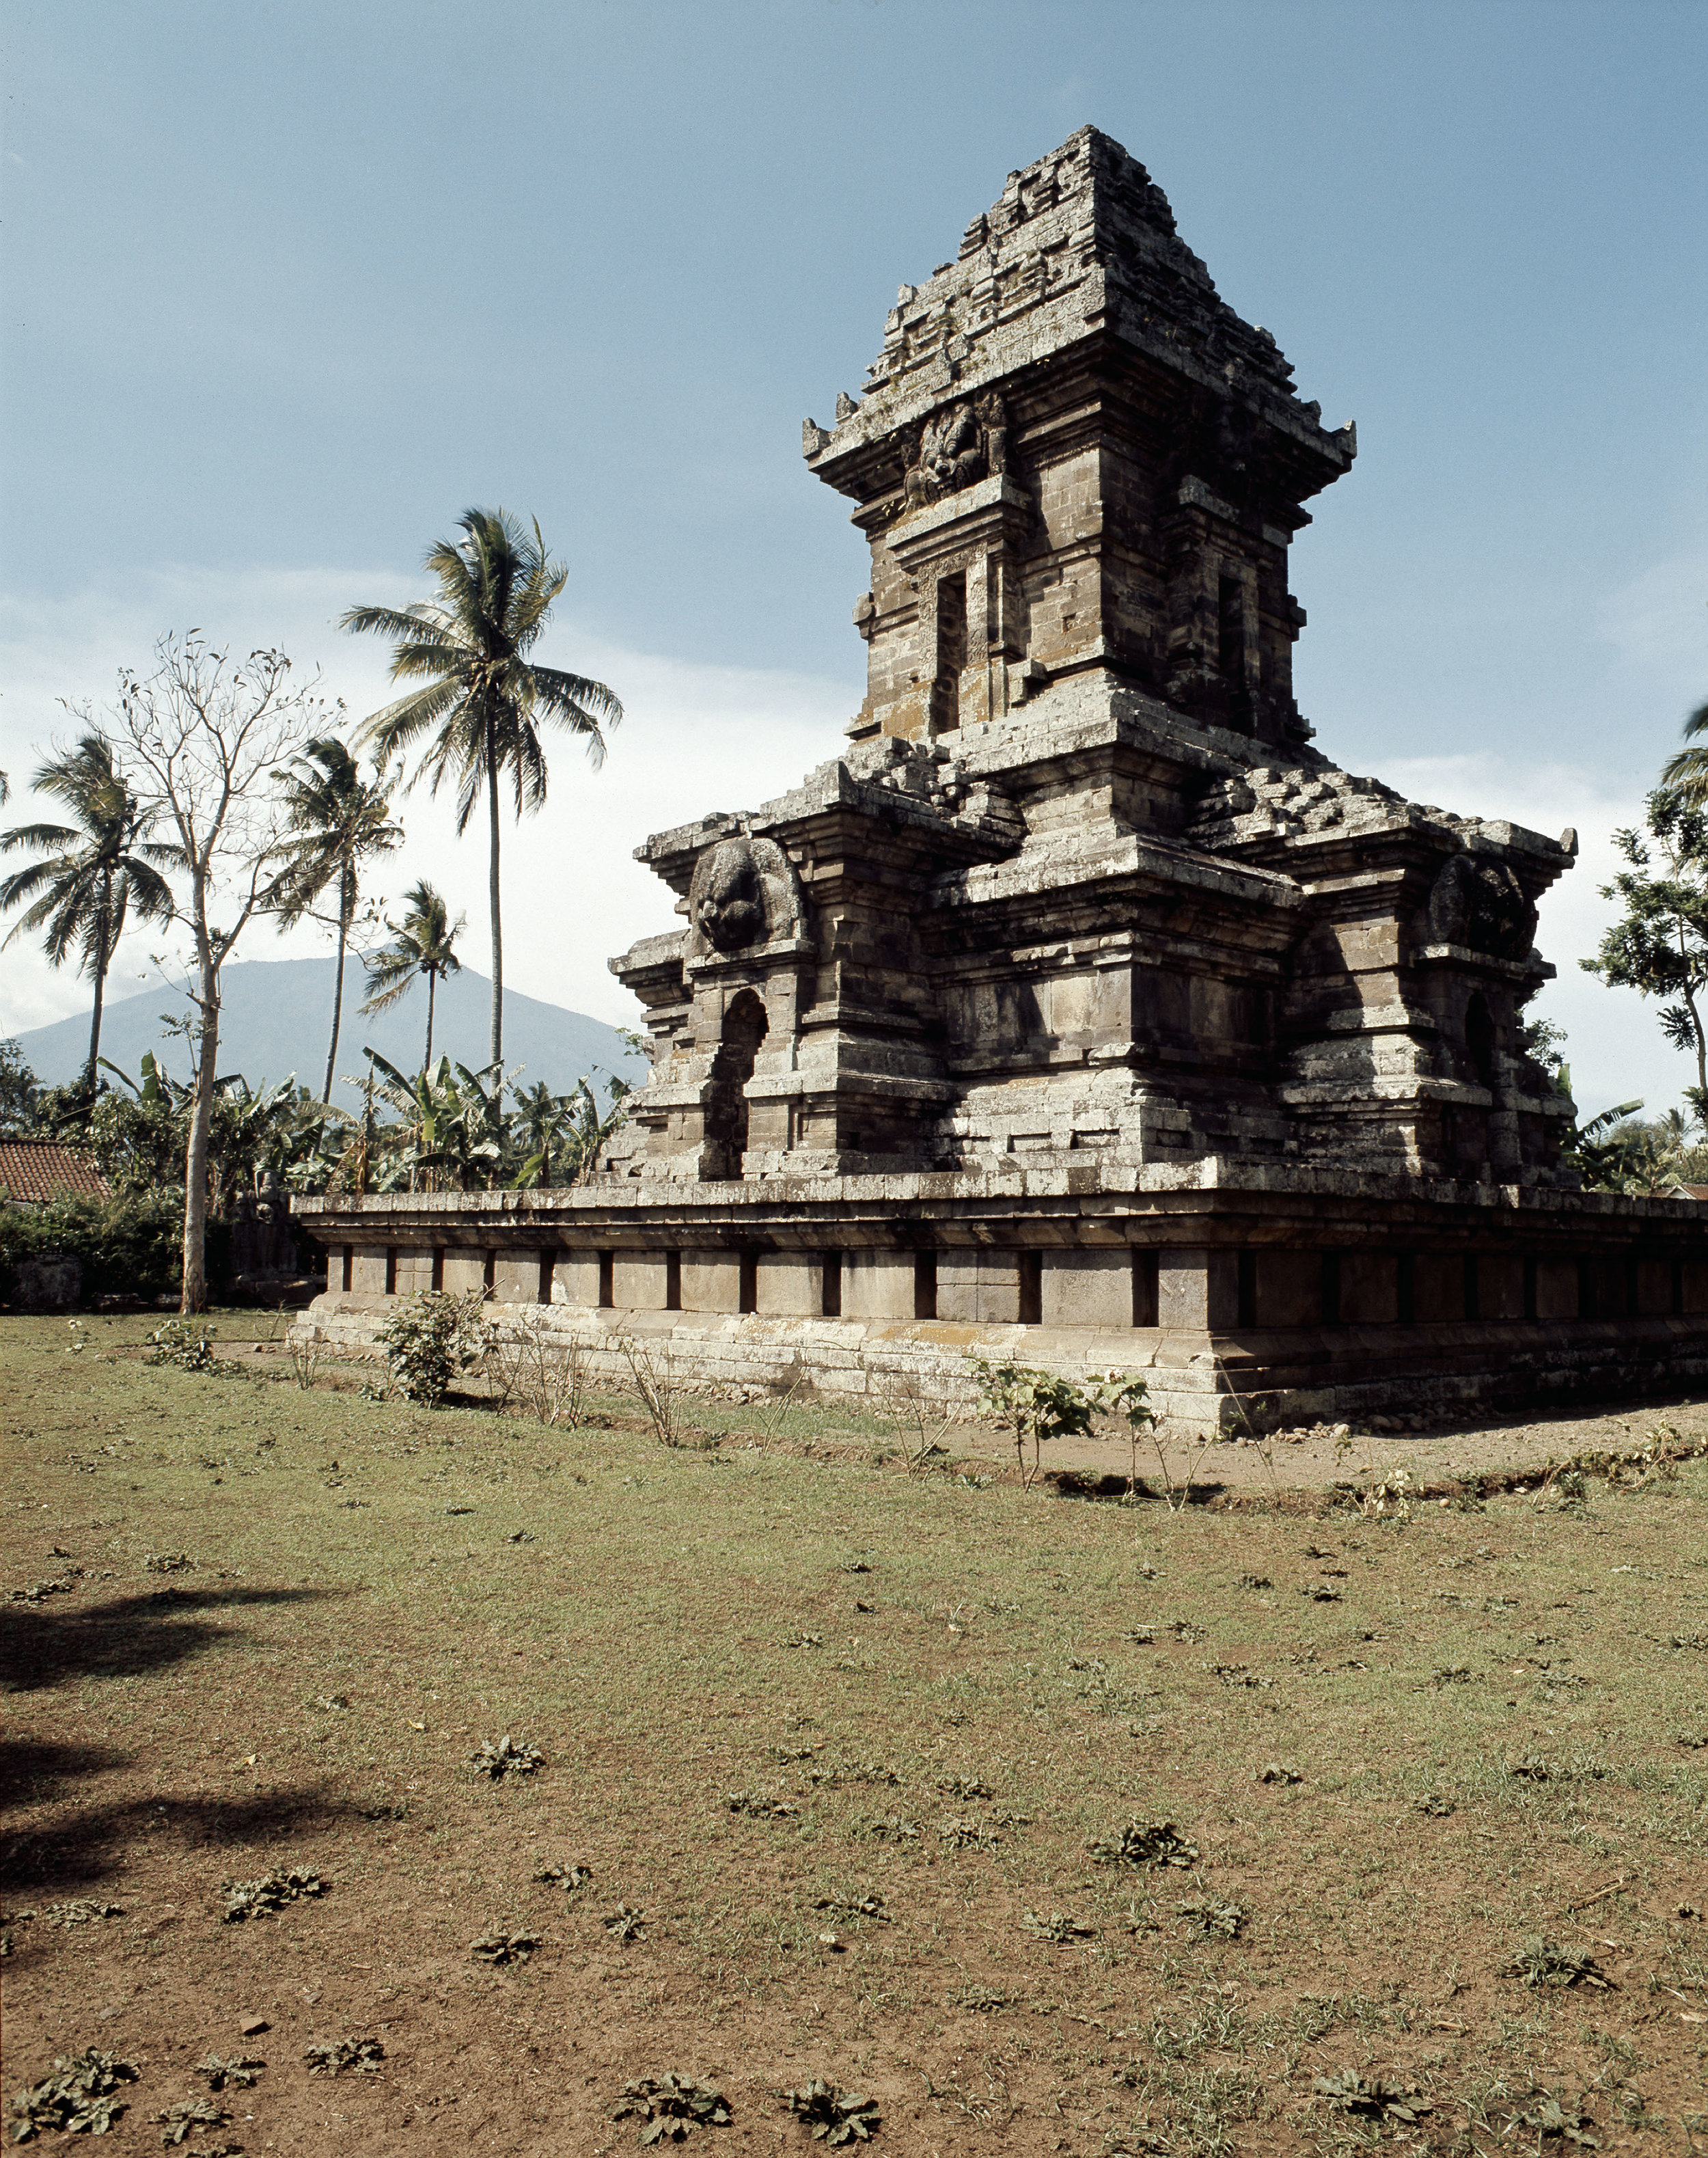 The temple complex at Lara Jonggrang consists of three main sanctuaries dedicated to Shiva, Brahma and Vishnu and three minor ones dedicated to particular forms of Shiva and Shiva's bull mount, Nandi. Originally there were 232 temples. The whole complex takes the form of the Mount Meru, the cosmic mountain. Country of Origin: Java, Indonesia. Culture: Hindu. Date/Period: c.900-930 AD. Place of Origin: Prambanan. Credit Line: Werner Forman Archive.